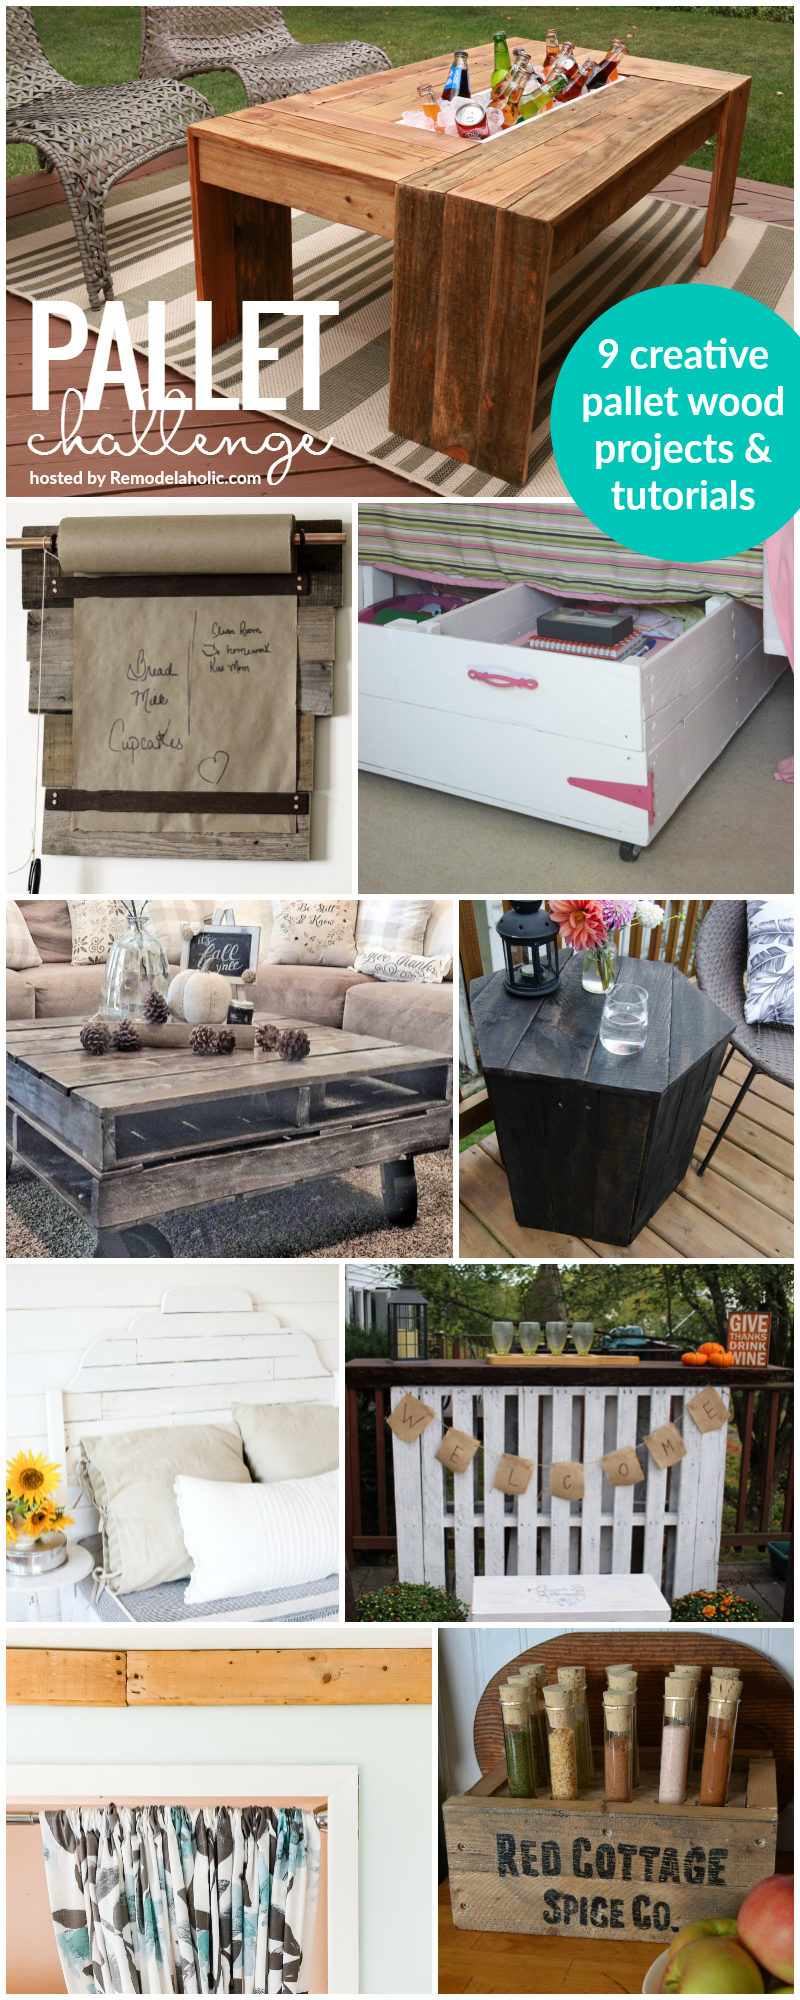 The Pallet Challenge: 9 creative DIY pallet projects with FULL tutorials. Includes an outdoor coffee table with drink cooler, memo board, storage, headboard, and more.